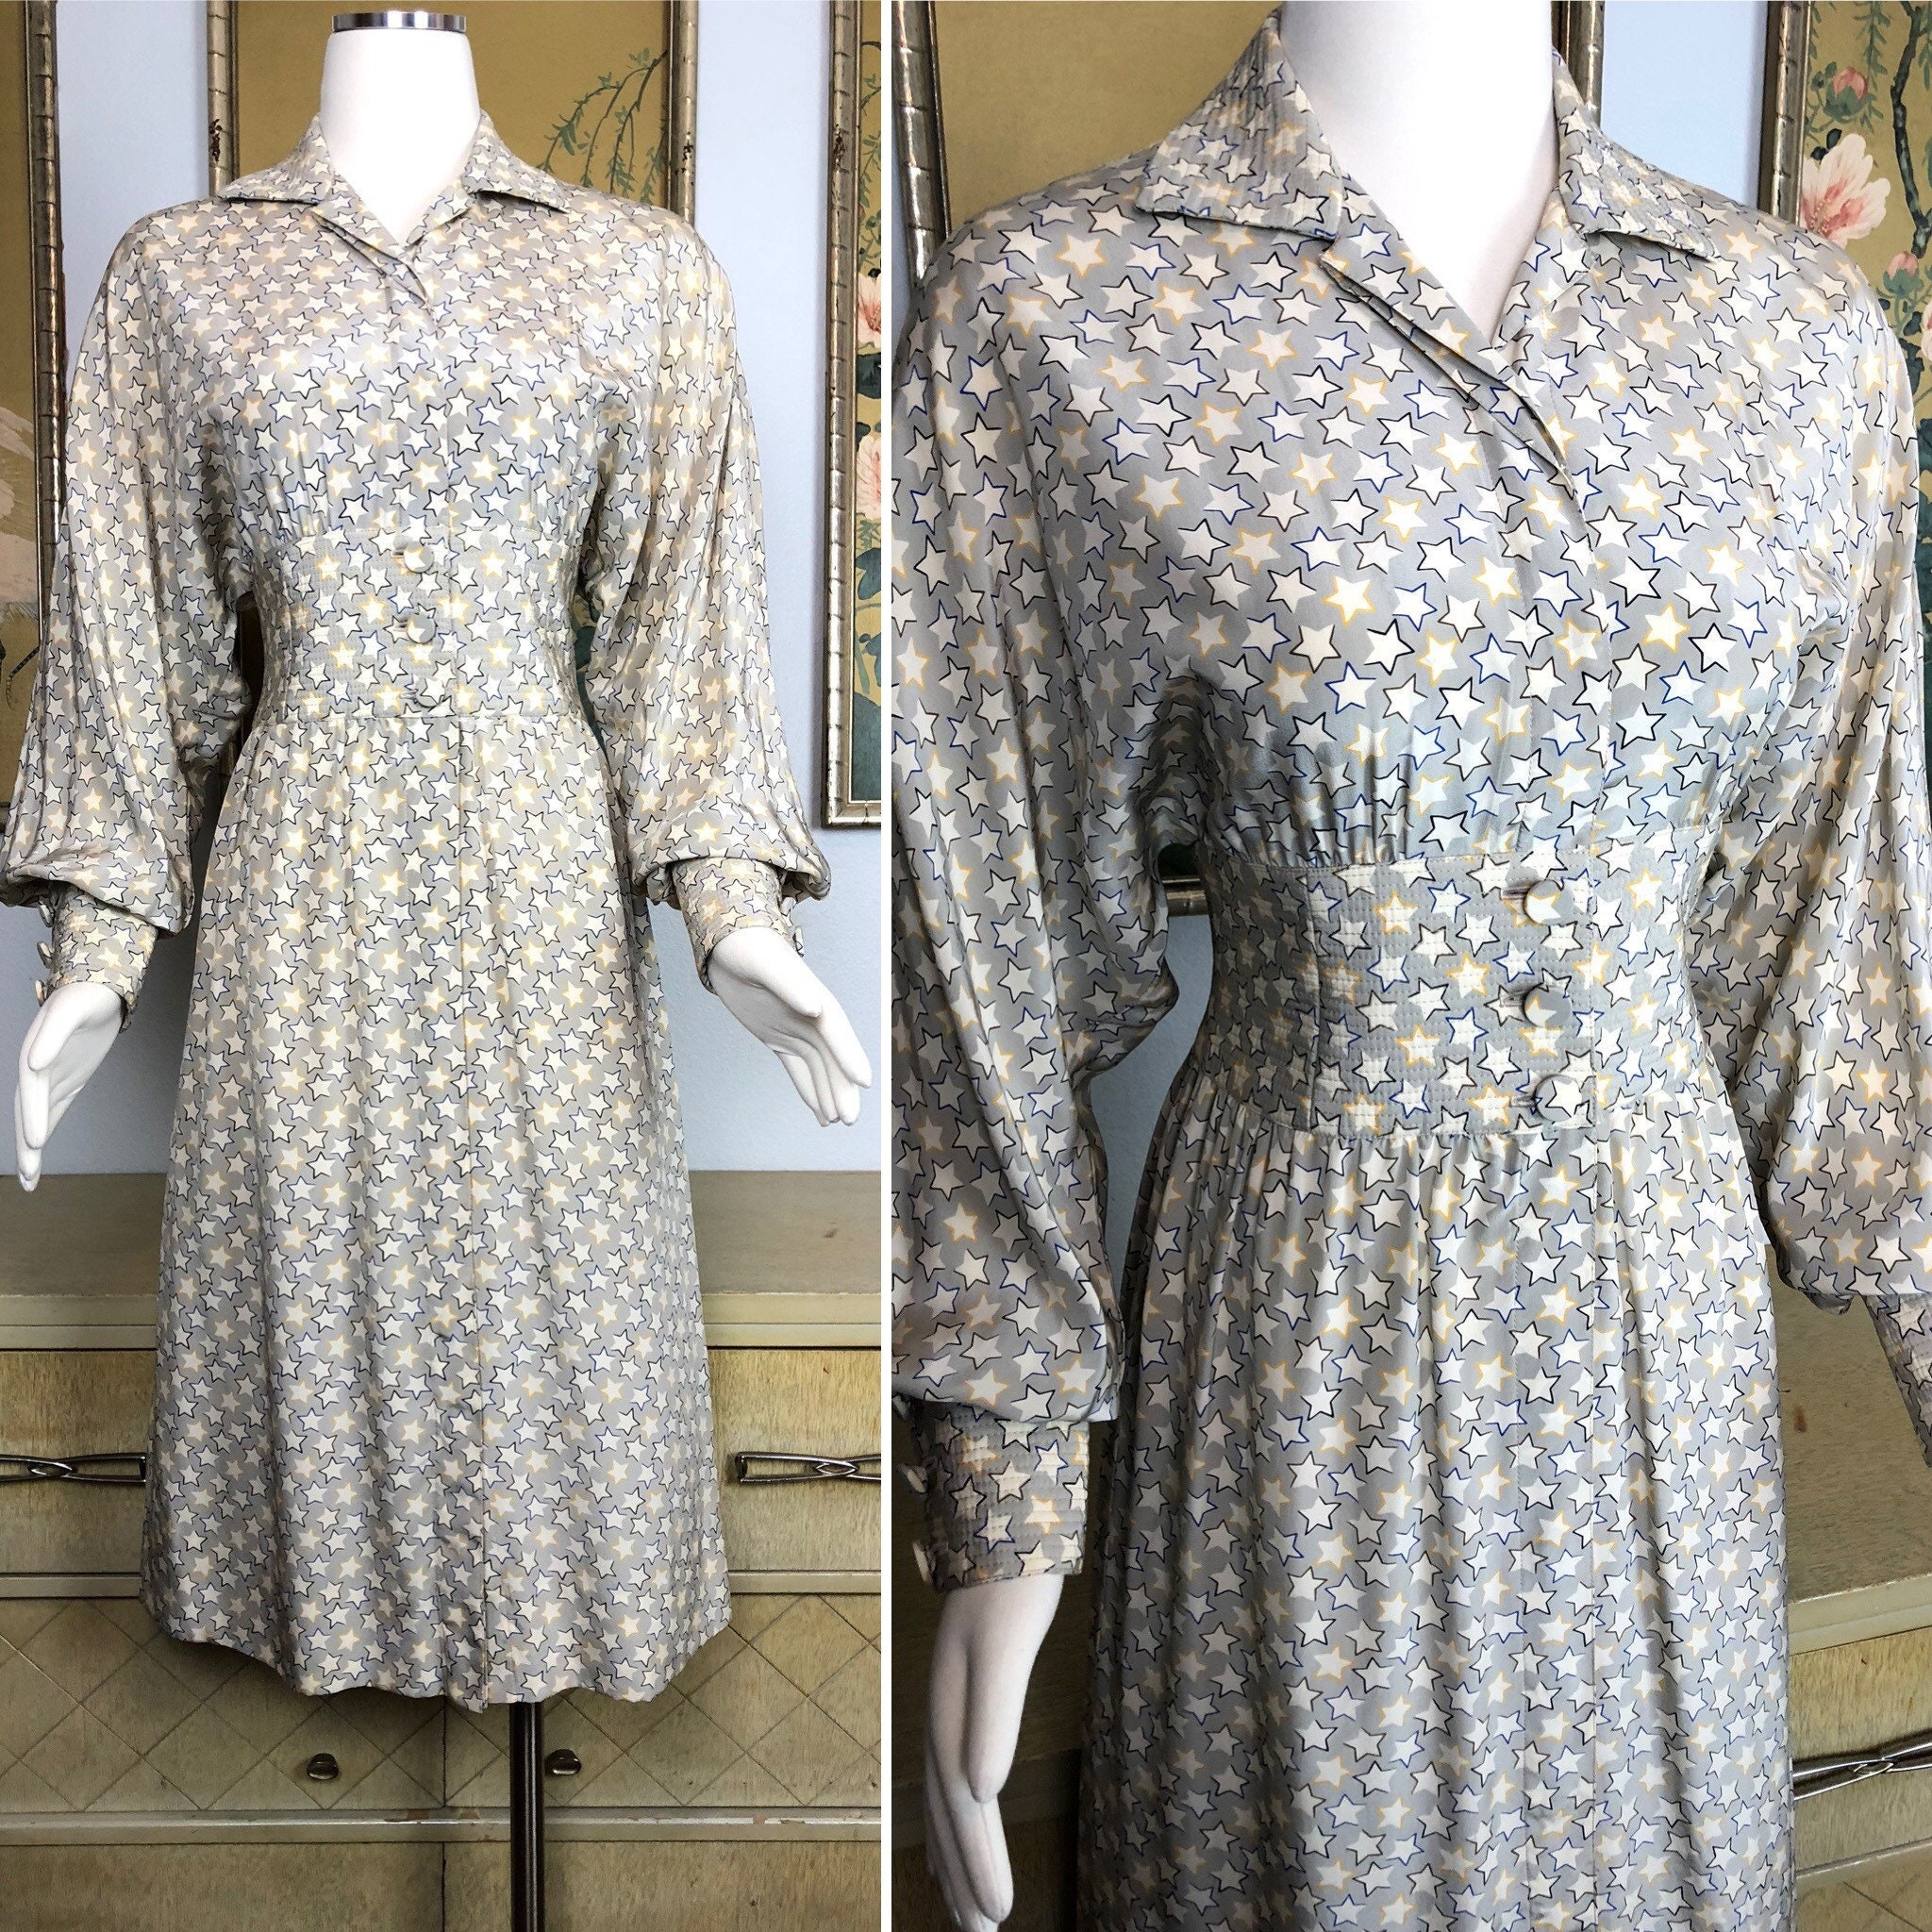 80s Dresses | Casual to Party Dresses 1980S Vintage Star Print Dress By Saks Fifth Avenue Flattering Silhouette  Darling Print $27.50 AT vintagedancer.com